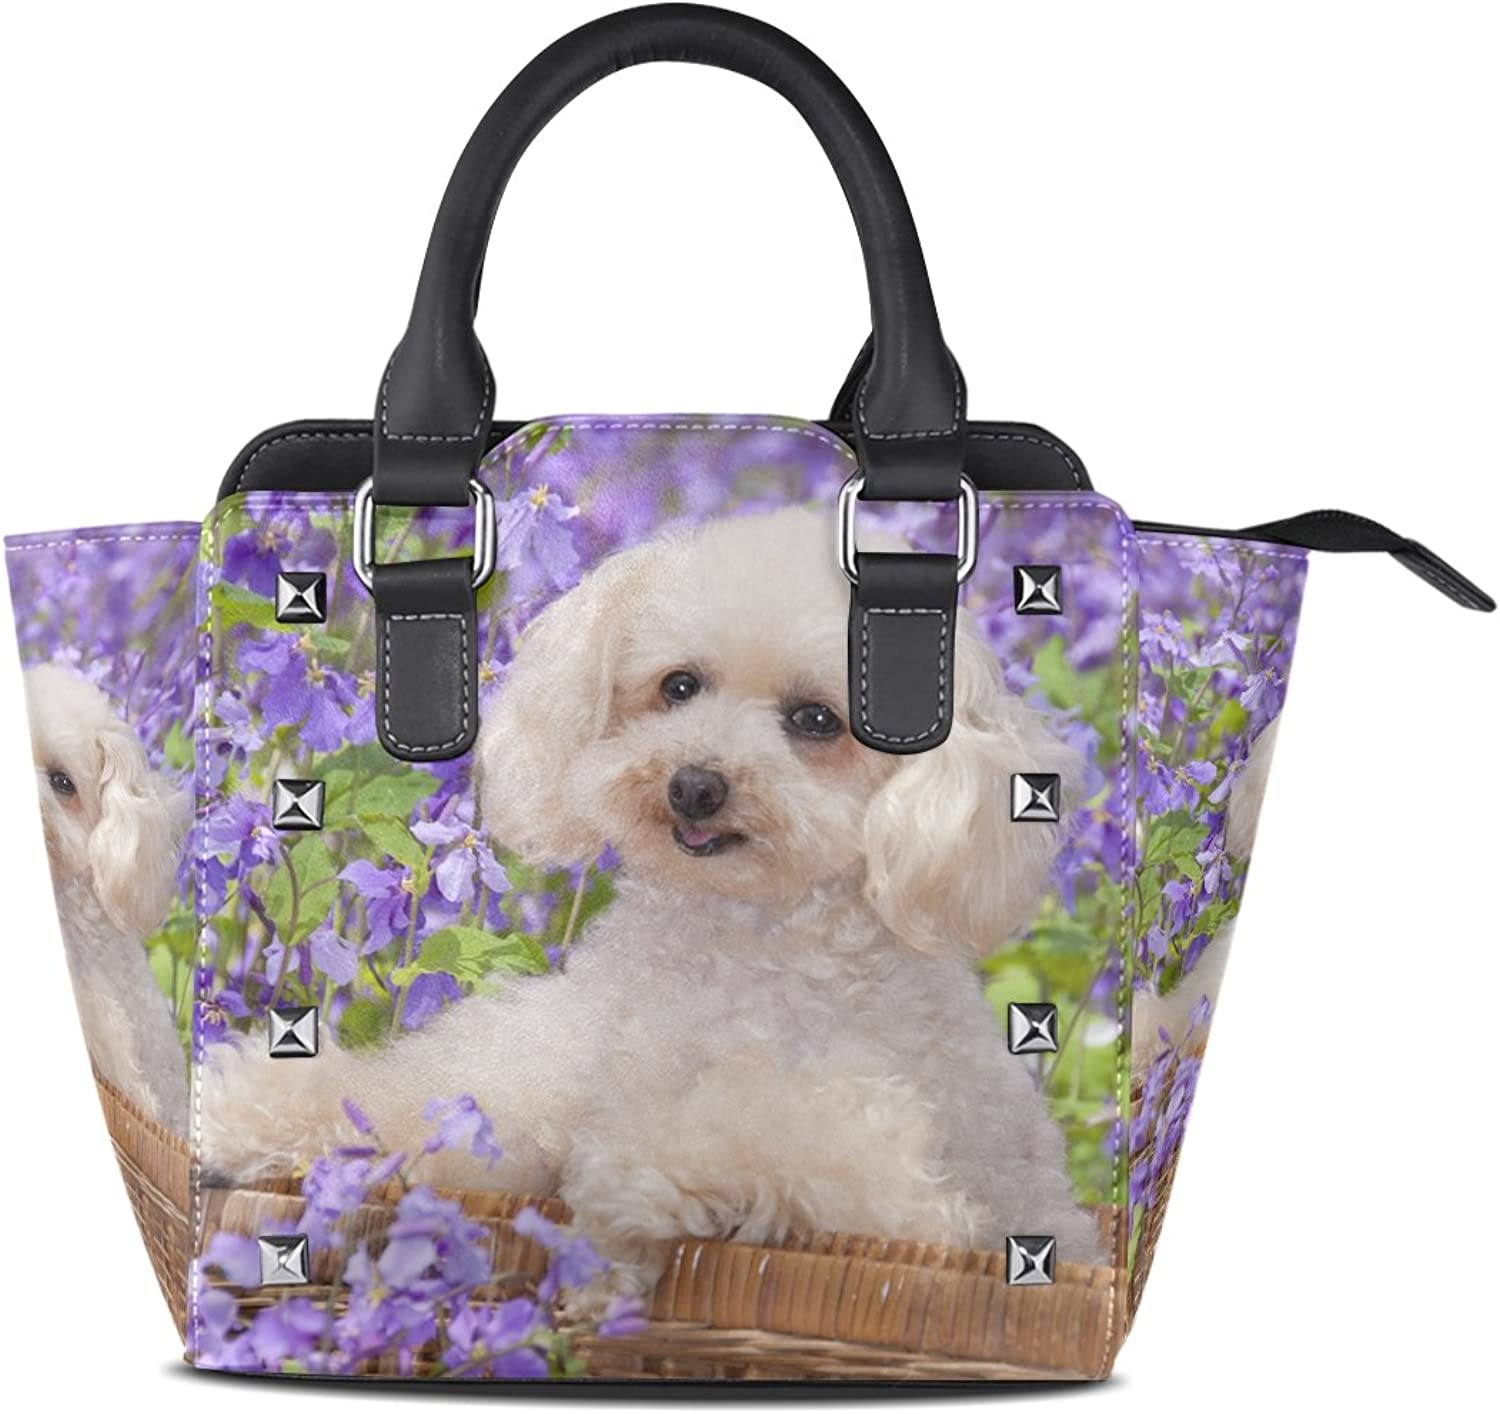 My Little Nest Women's Top Handle Satchel Handbag Dog Flowers Ladies PU Leather Shoulder Bag Crossbody Bag